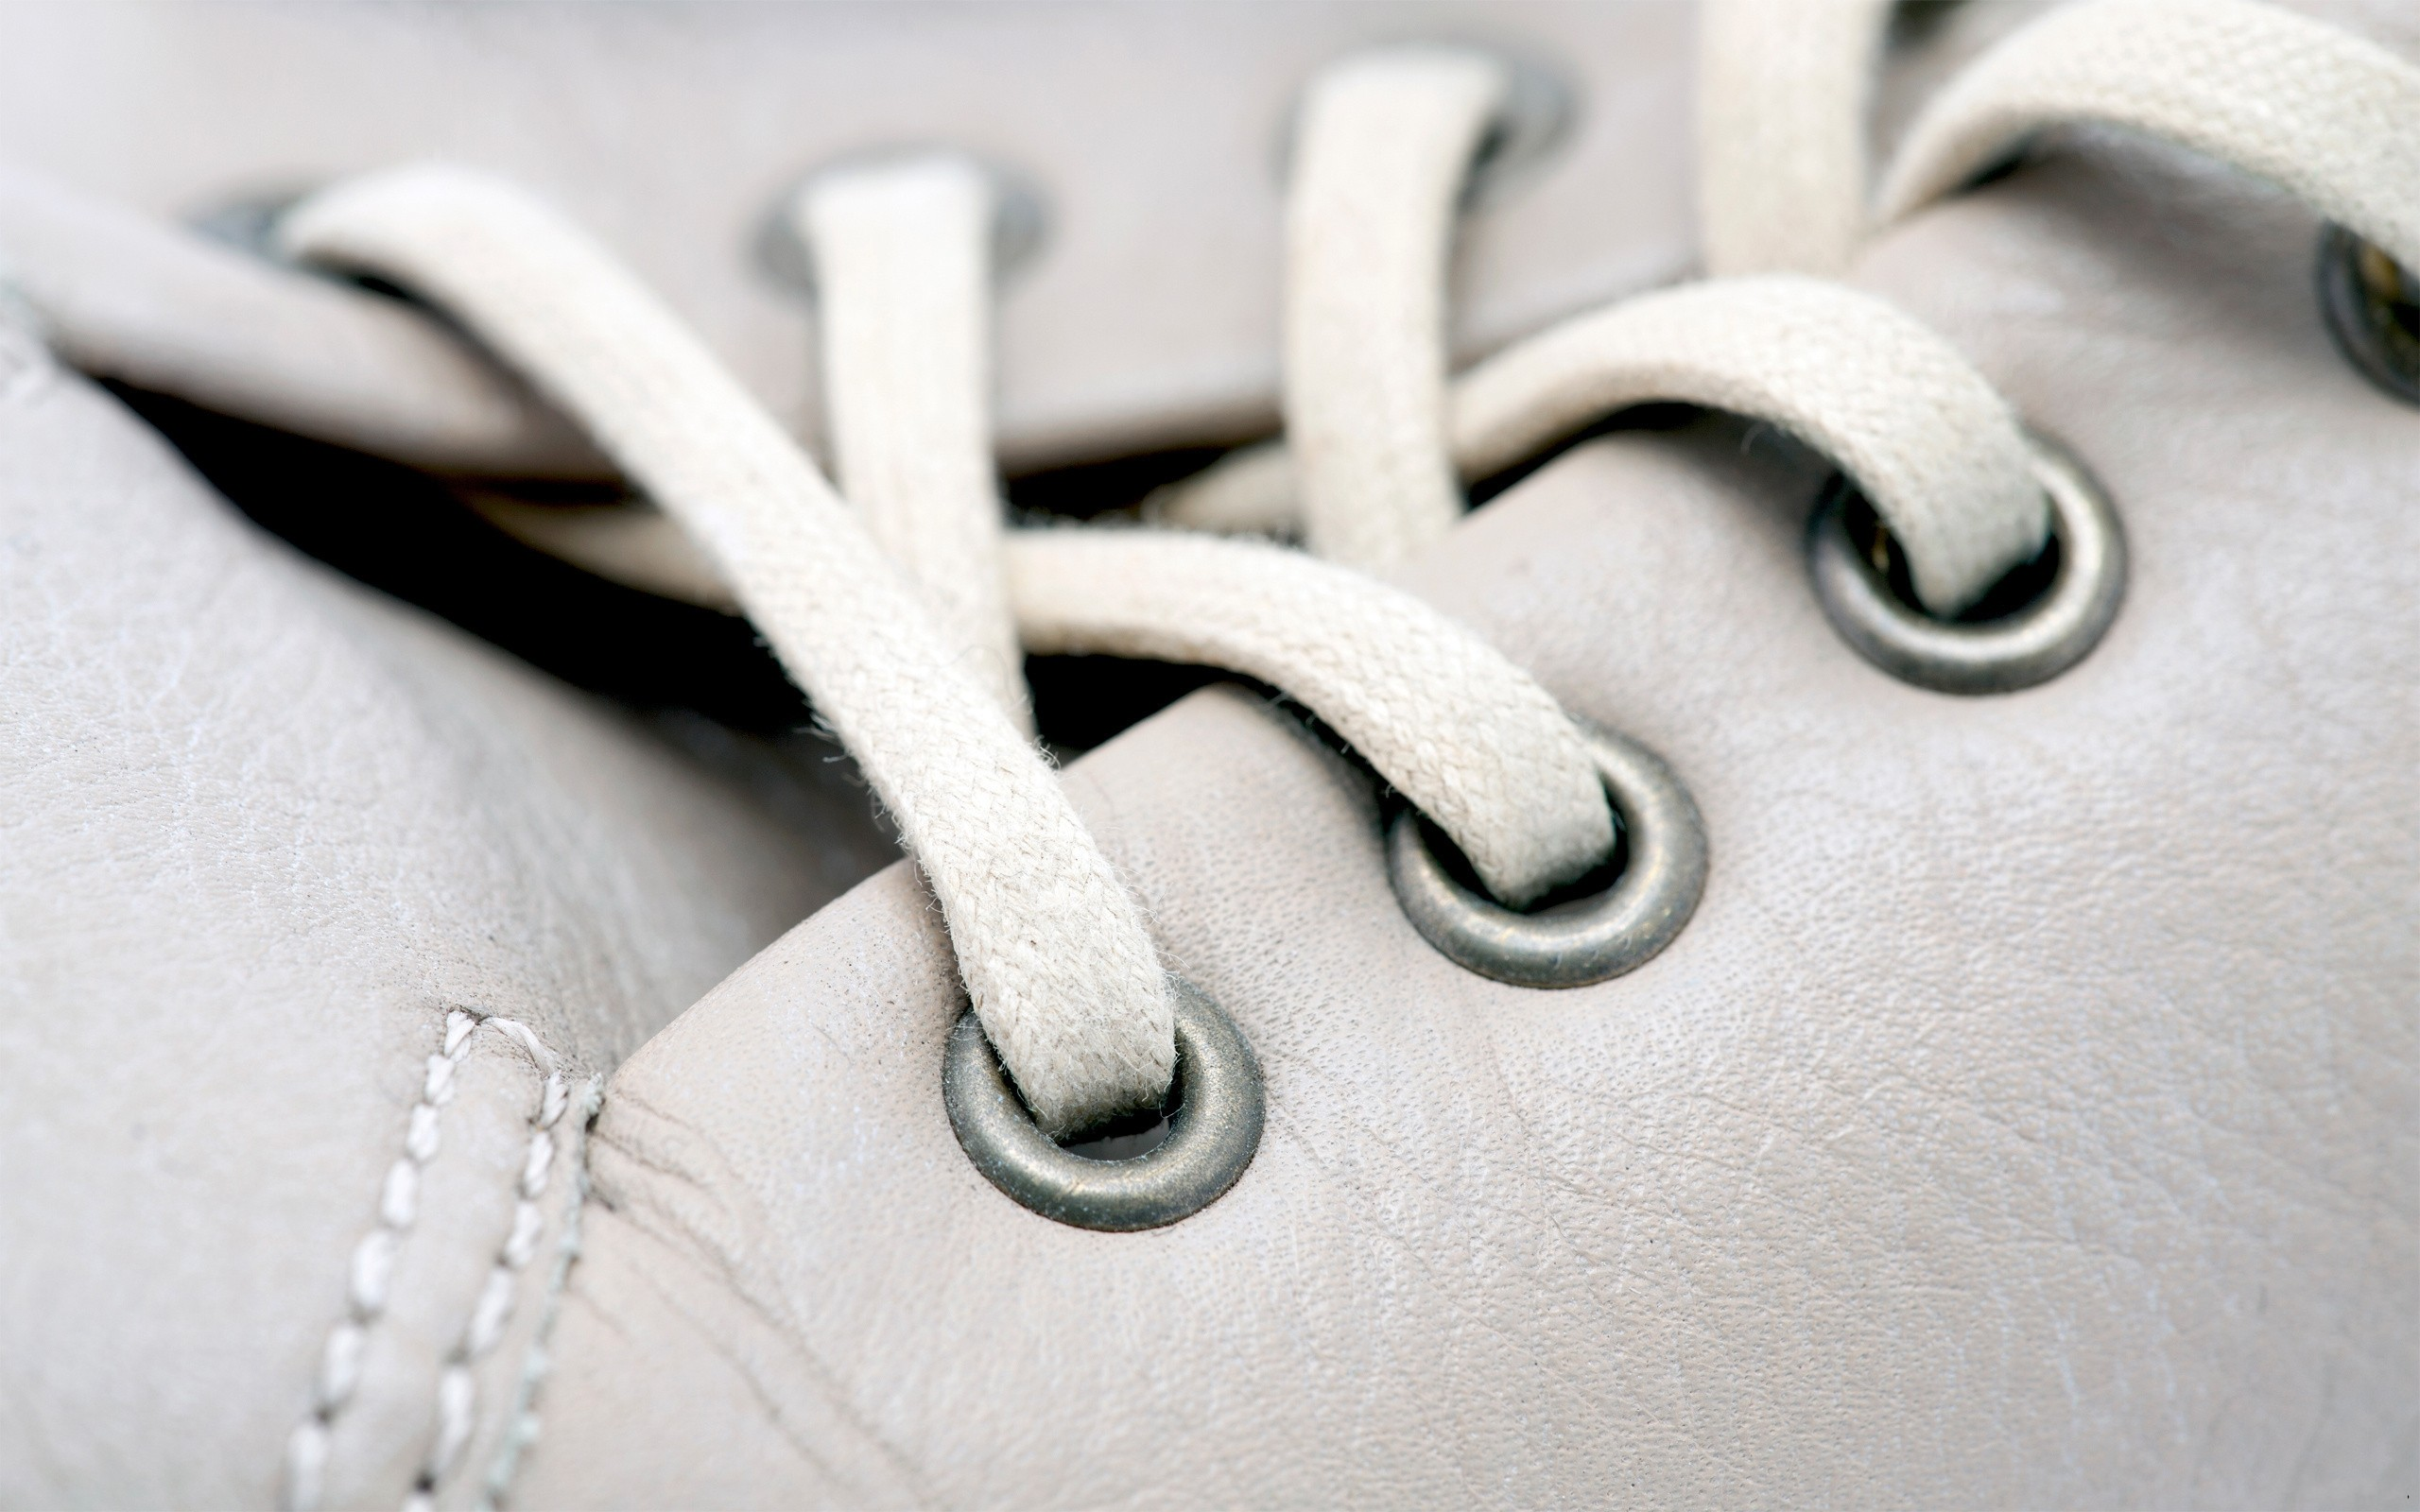 Shoe Laces Wallpaper 42834 1920x1200 px